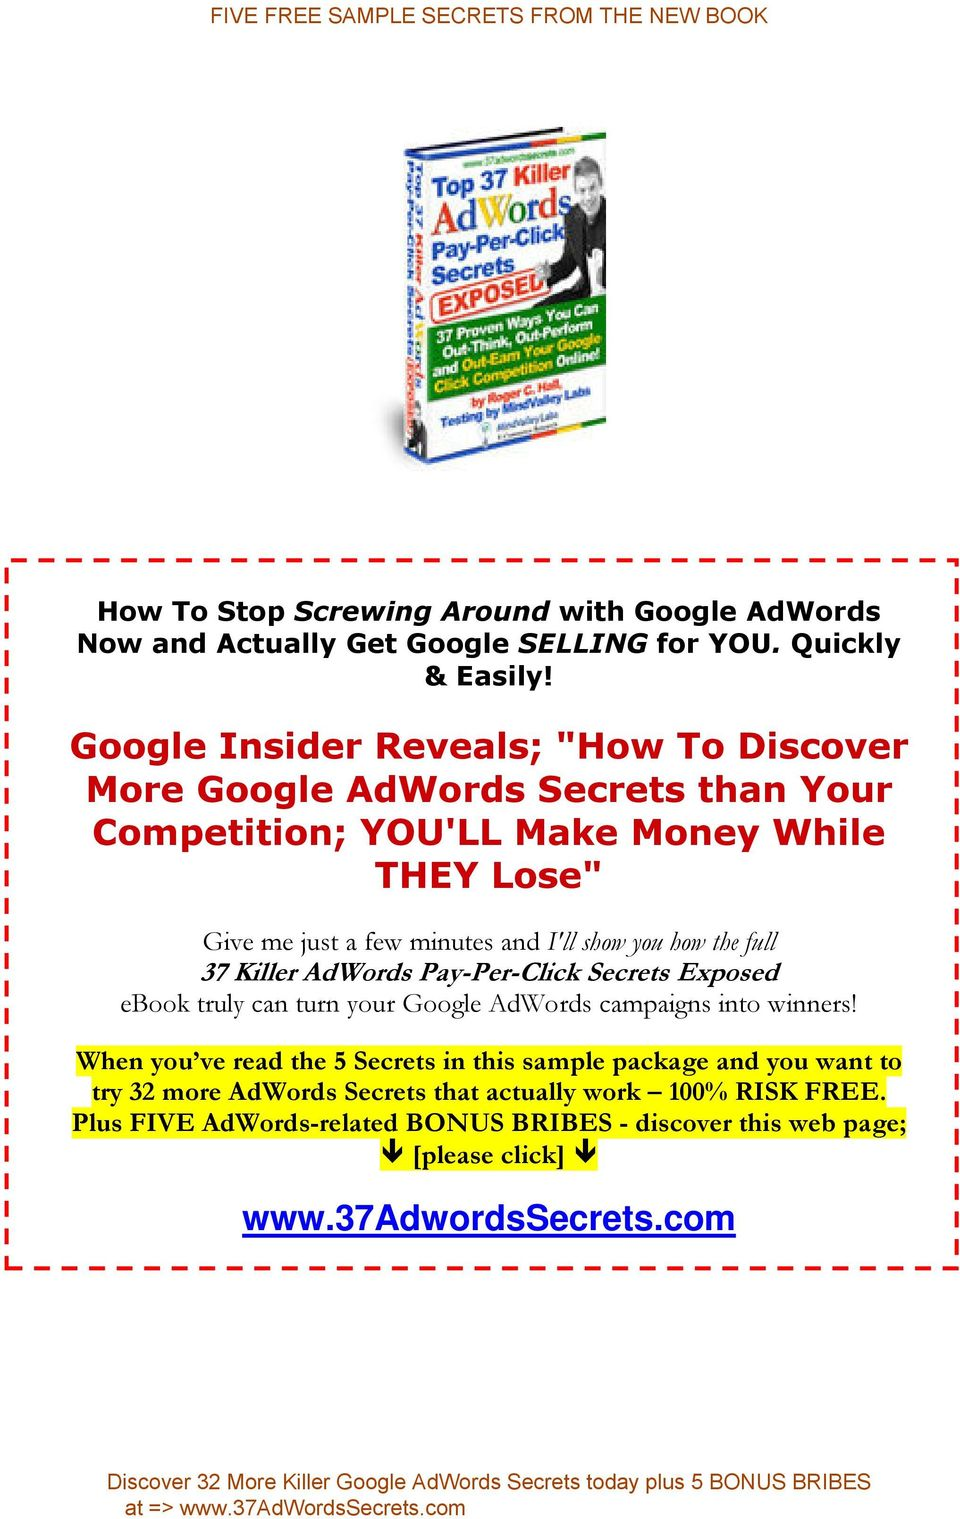 I'll show you how the full 37 Killer AdWords Pay-Per-Click Secrets Exposed ebook truly can turn your Google AdWords campaigns into winners!